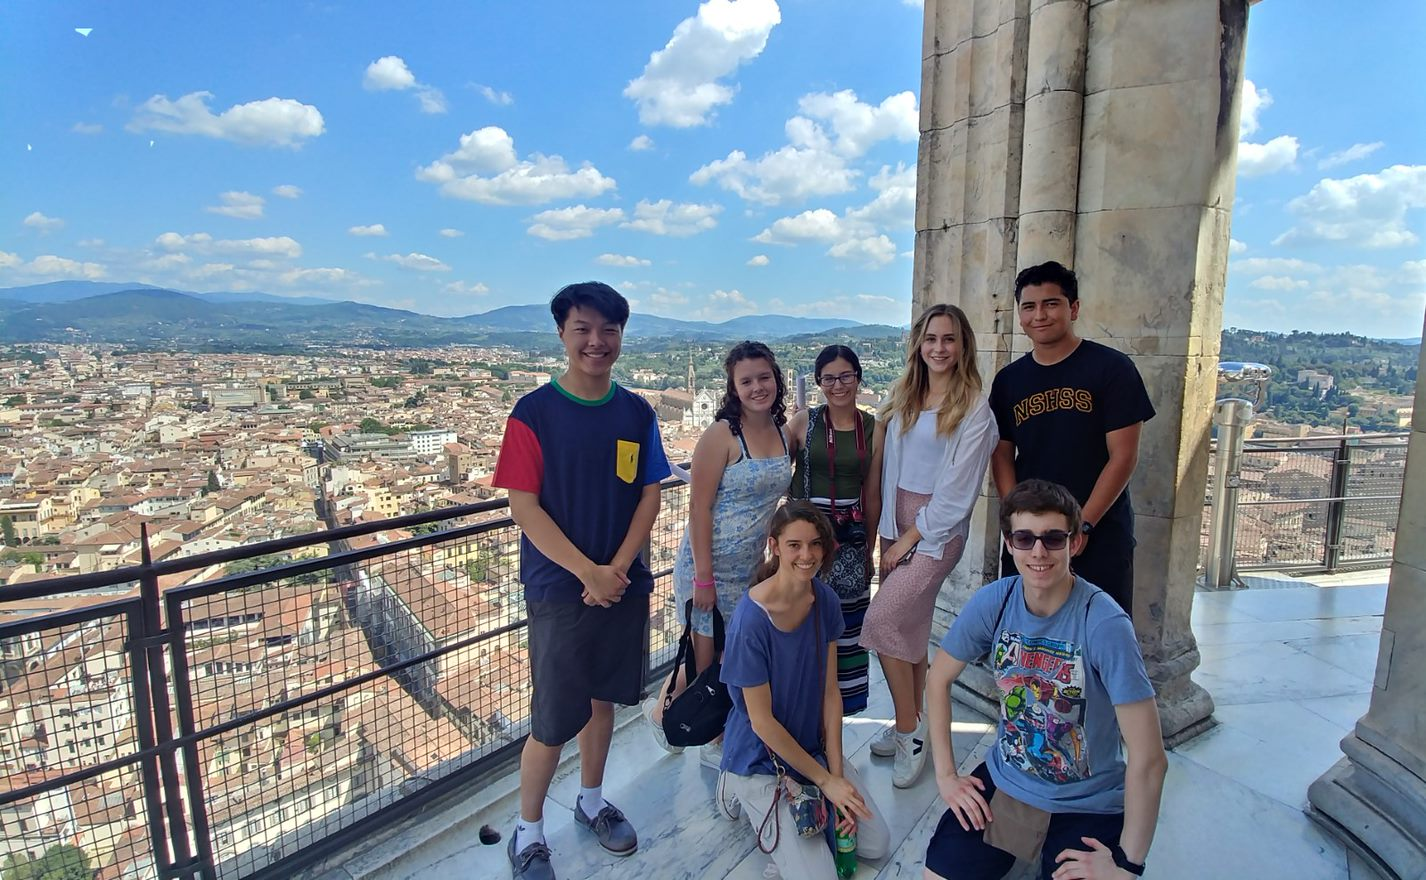 Summer Program - Career Exploration | CET Global Perspectives: Pre-College Summer Programs in China, France, Italy, Japan, Spain, and Washington, DC